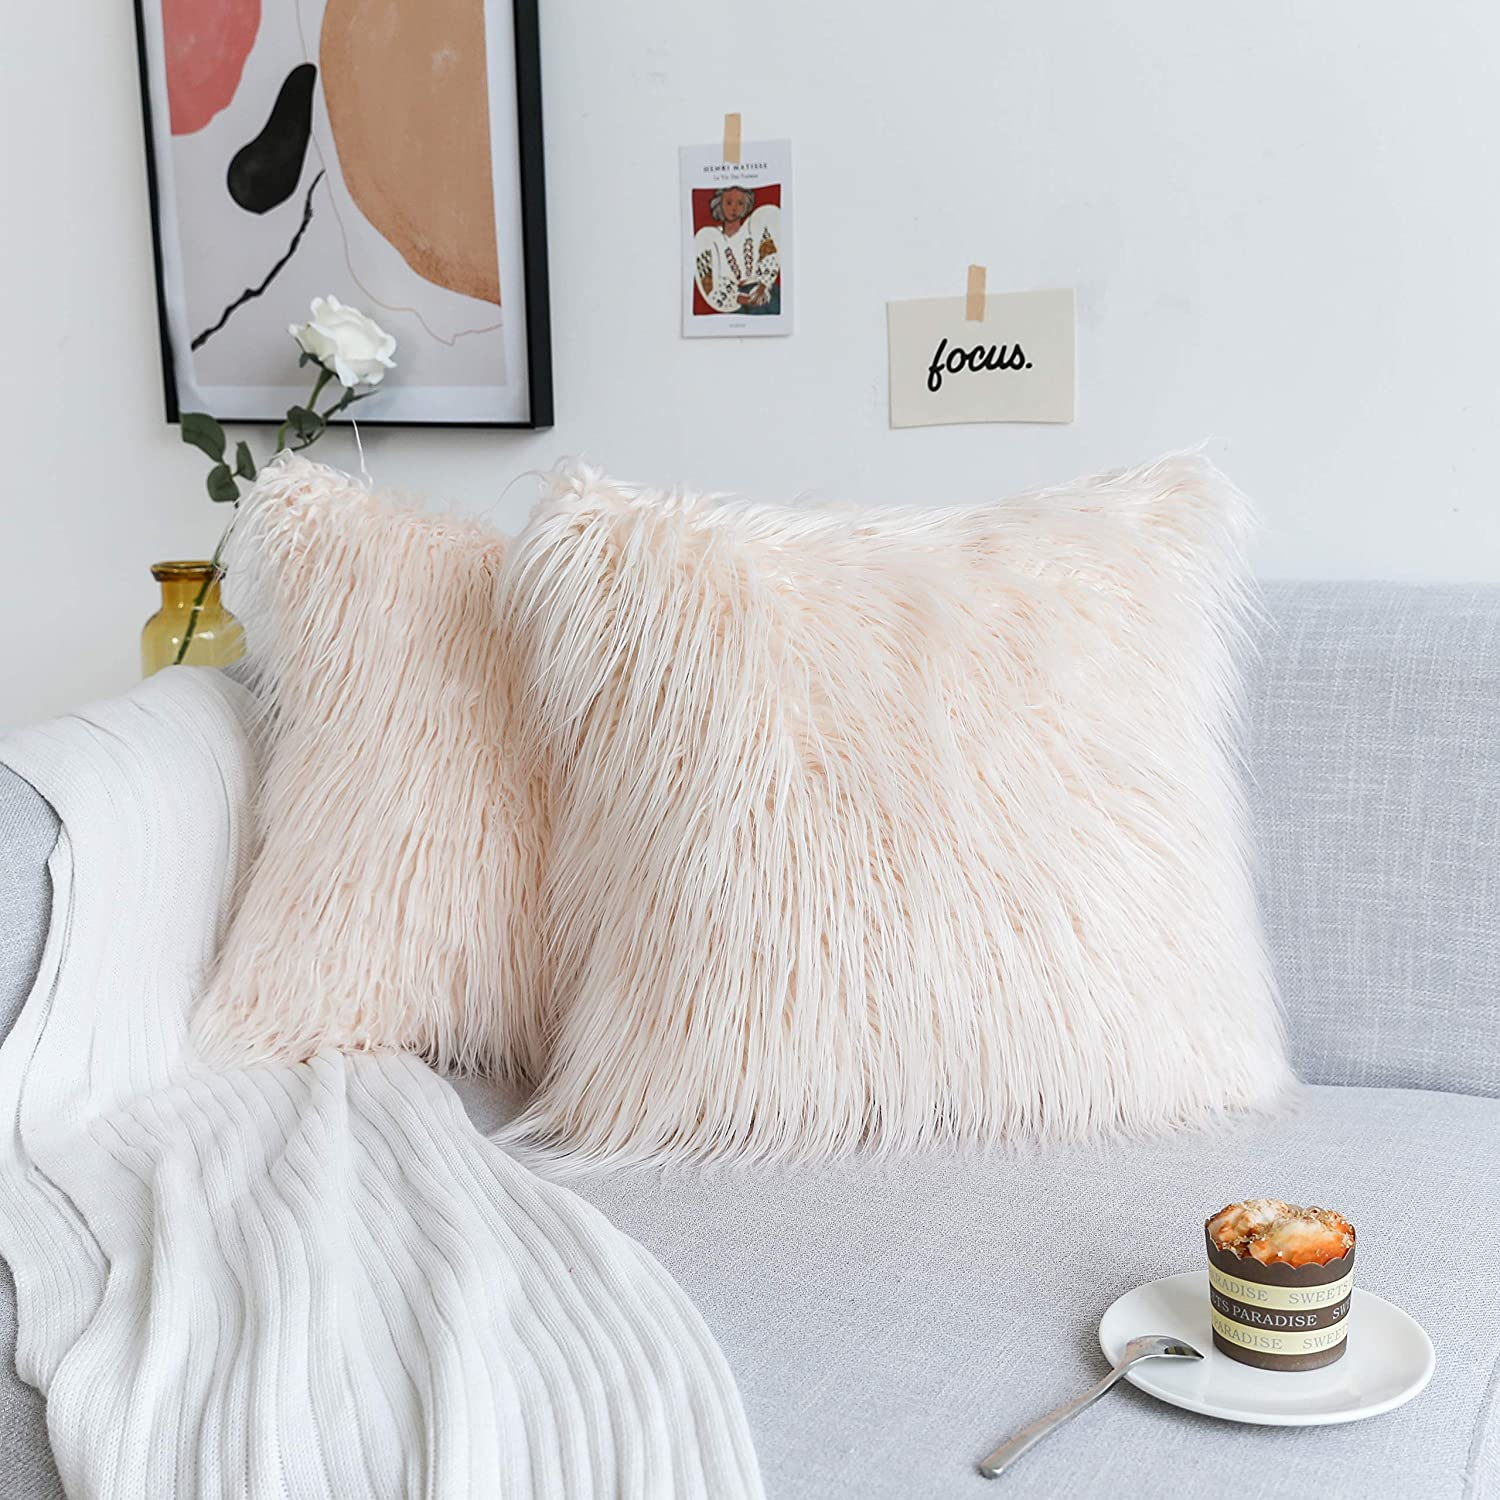 Enjoyable Kevin Textile Decorative New Luxury Series Merino Style Coral Pink Fur Fuzzy Throw Pillow Case Cushion Cover Pillow Cover For Bed Couch 2 Pc 18 X Alphanode Cool Chair Designs And Ideas Alphanodeonline